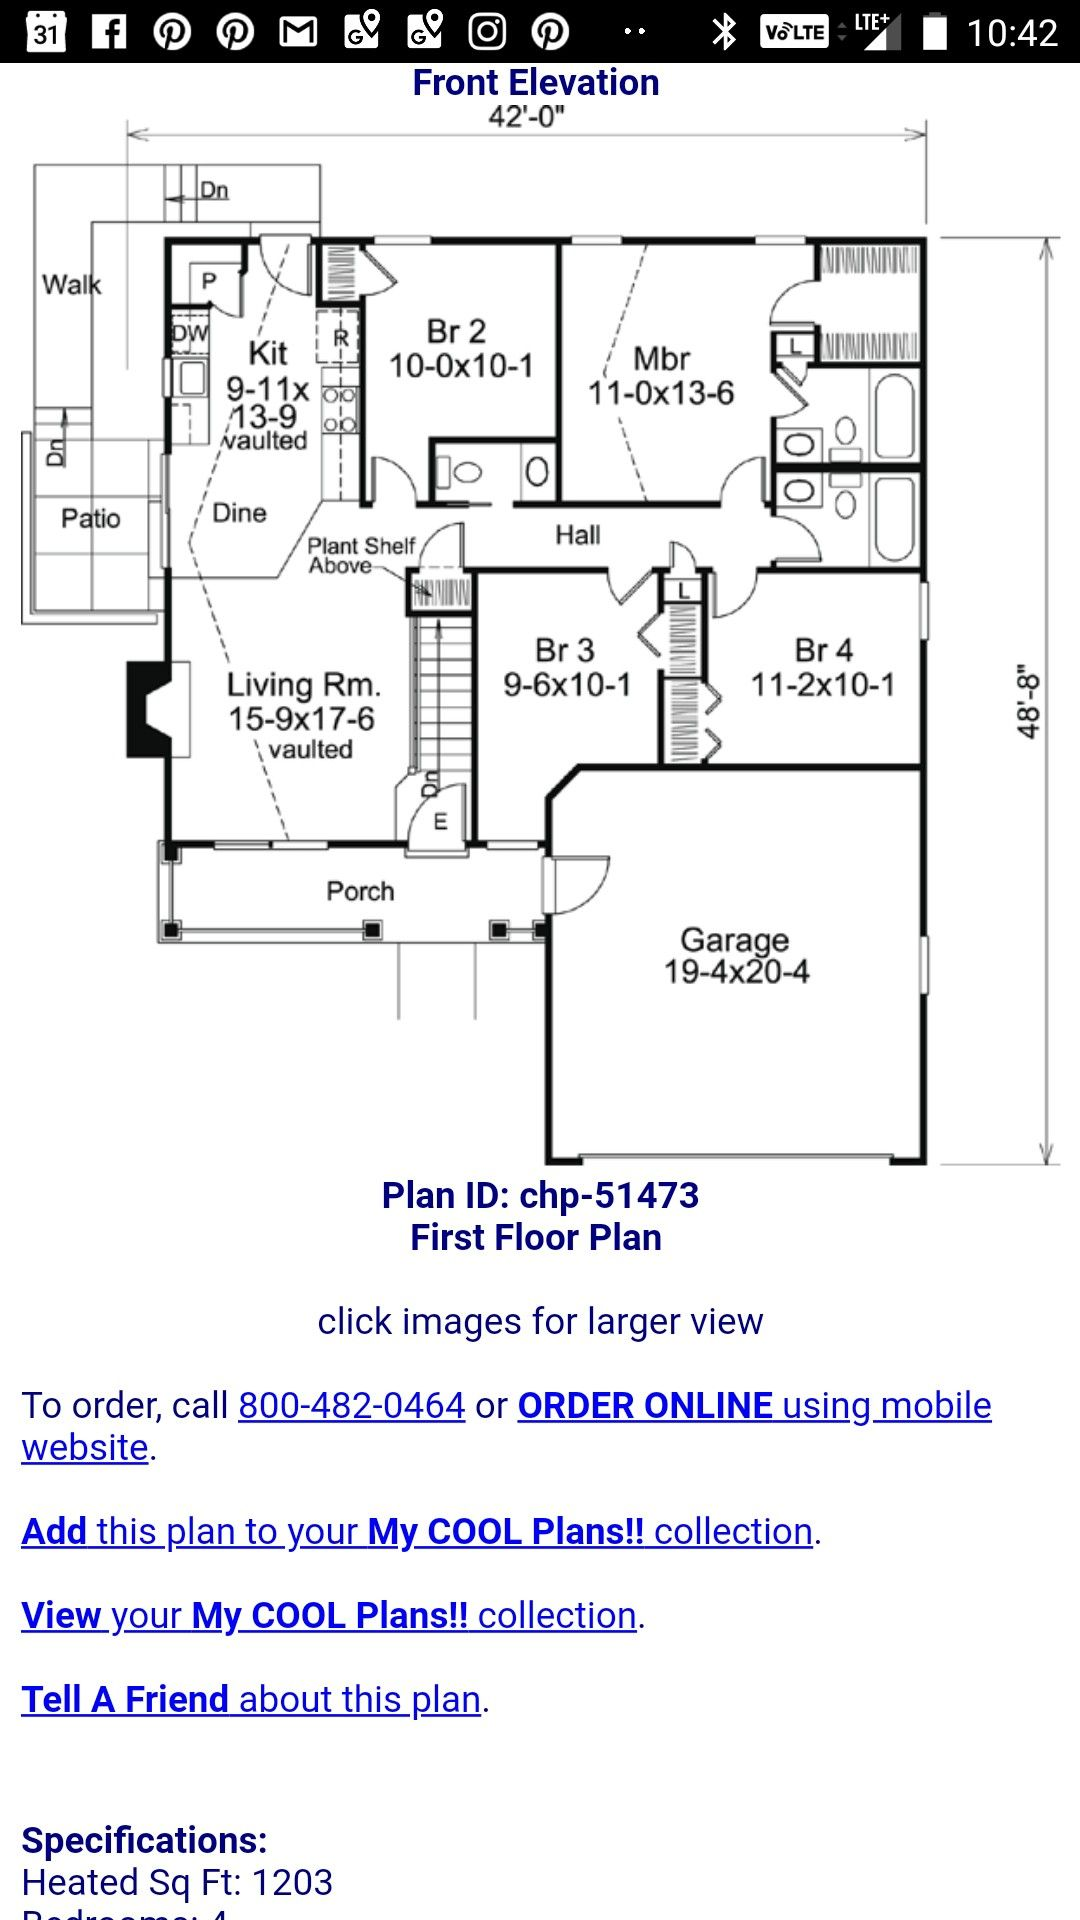 4 Bed 2 5 Bath 1200sq F House Plan Plant Shelves How To Plan House Plans